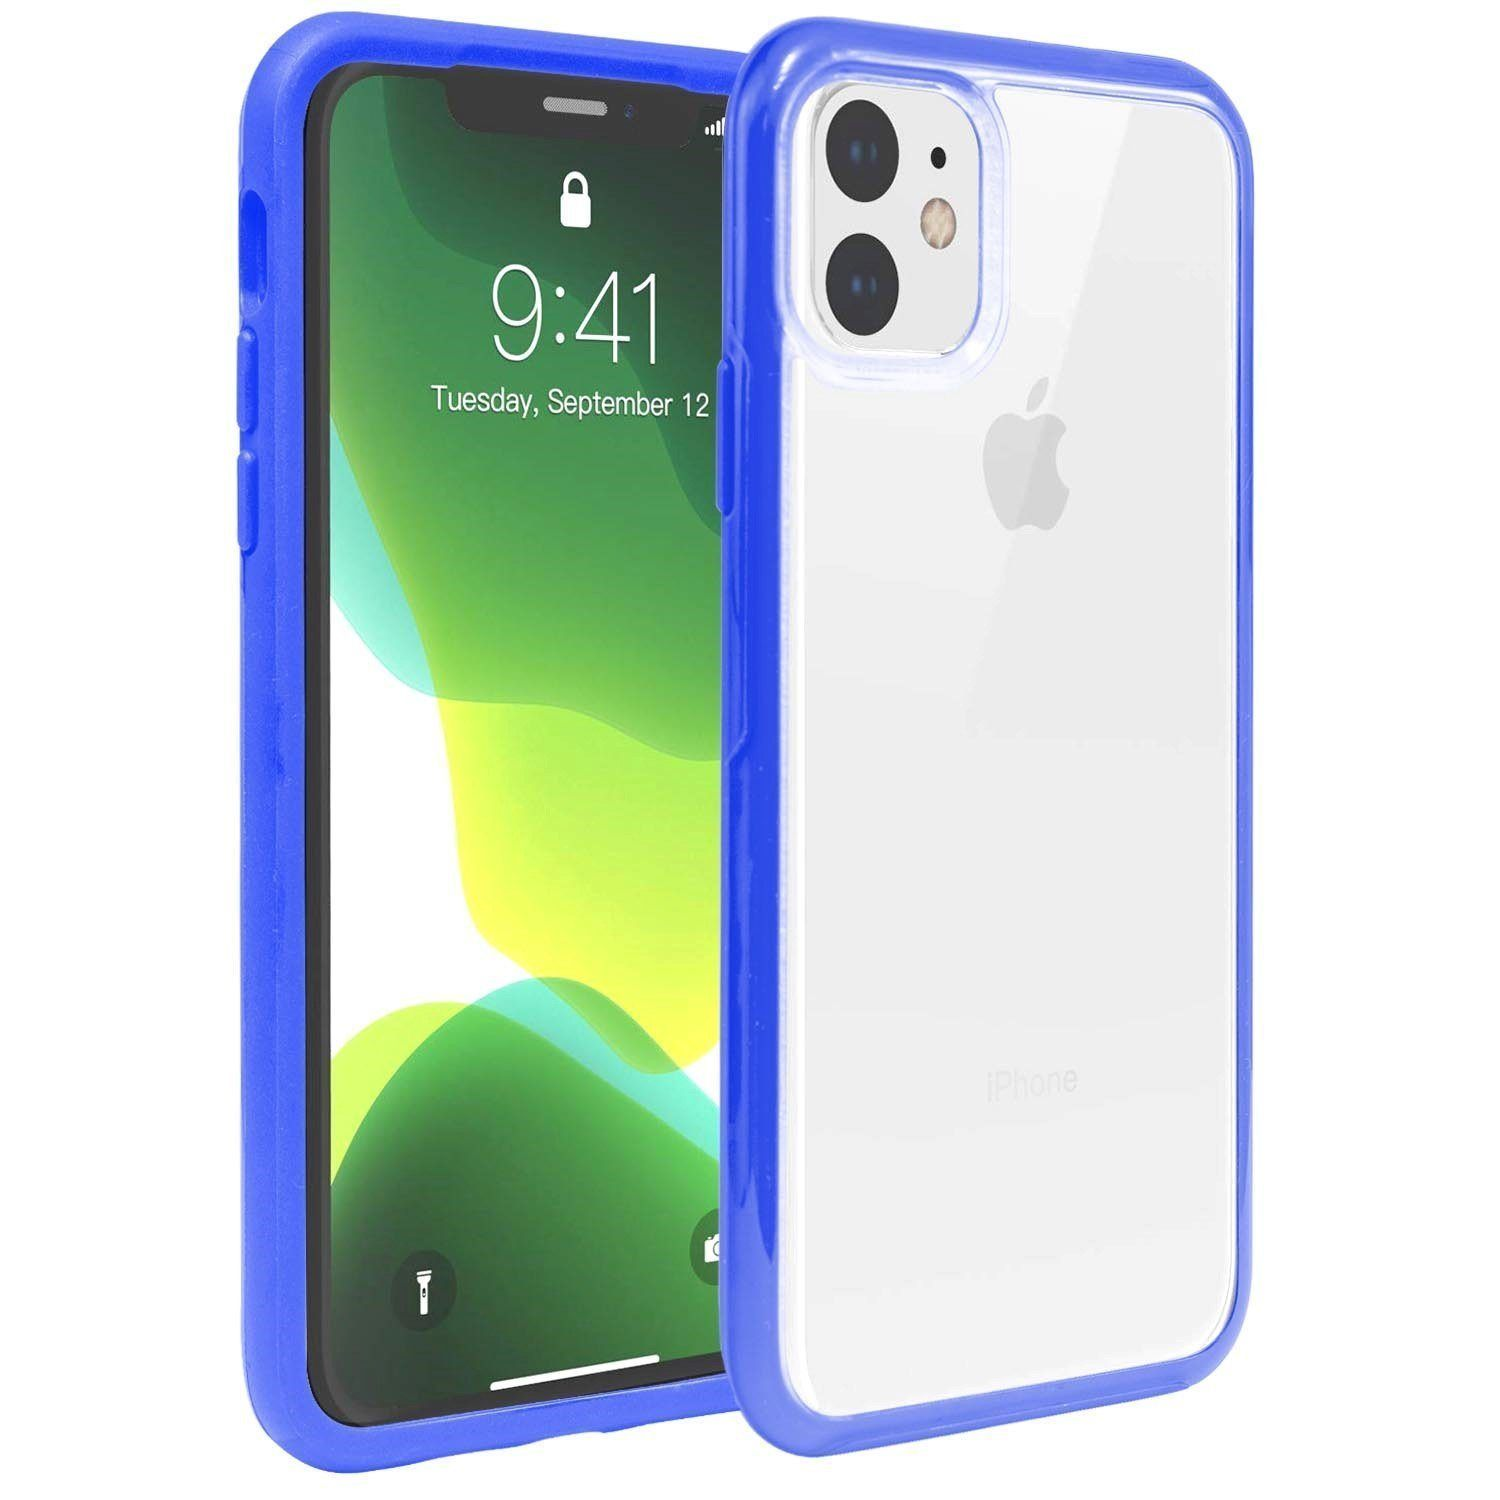 Hard Shell Transparent Back Case for iPhone 11 Pro Max - Blue Edge